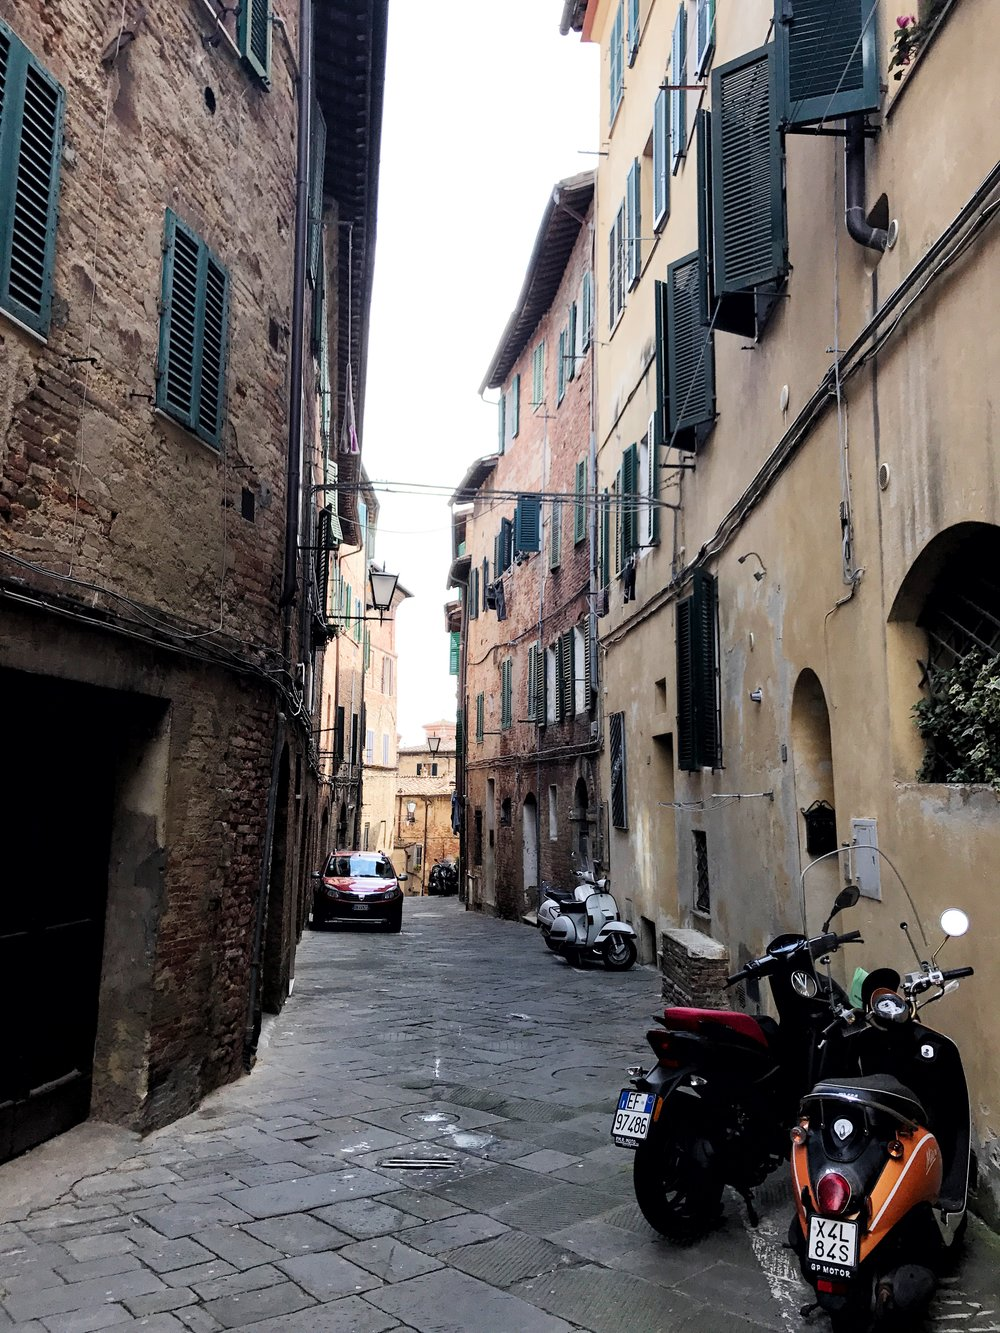 Streets of Siena, Italy